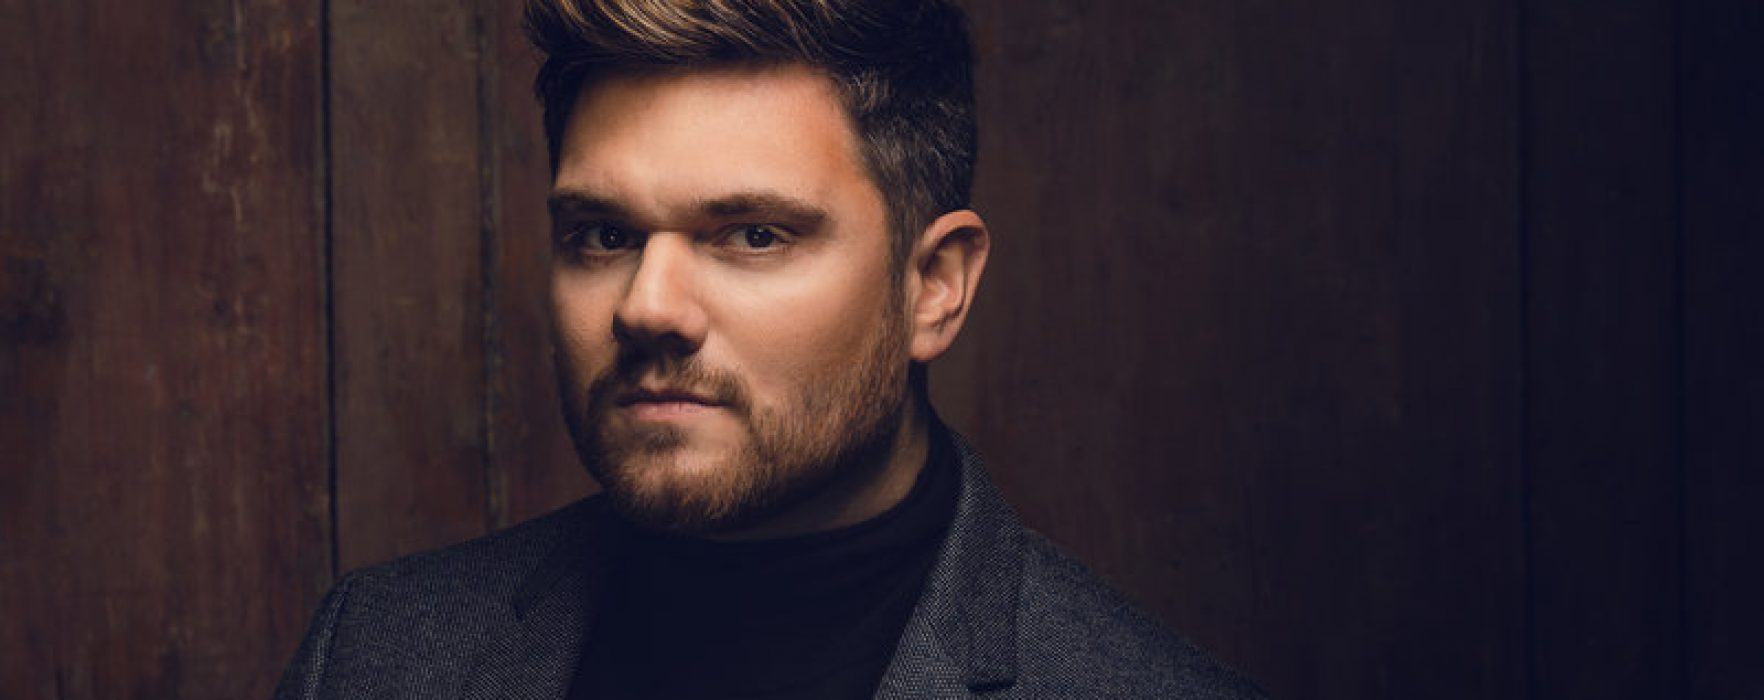 Touted as Britain's Michael Bublé singer Mark Kingswood chats to VIVA about his album 'Strong'